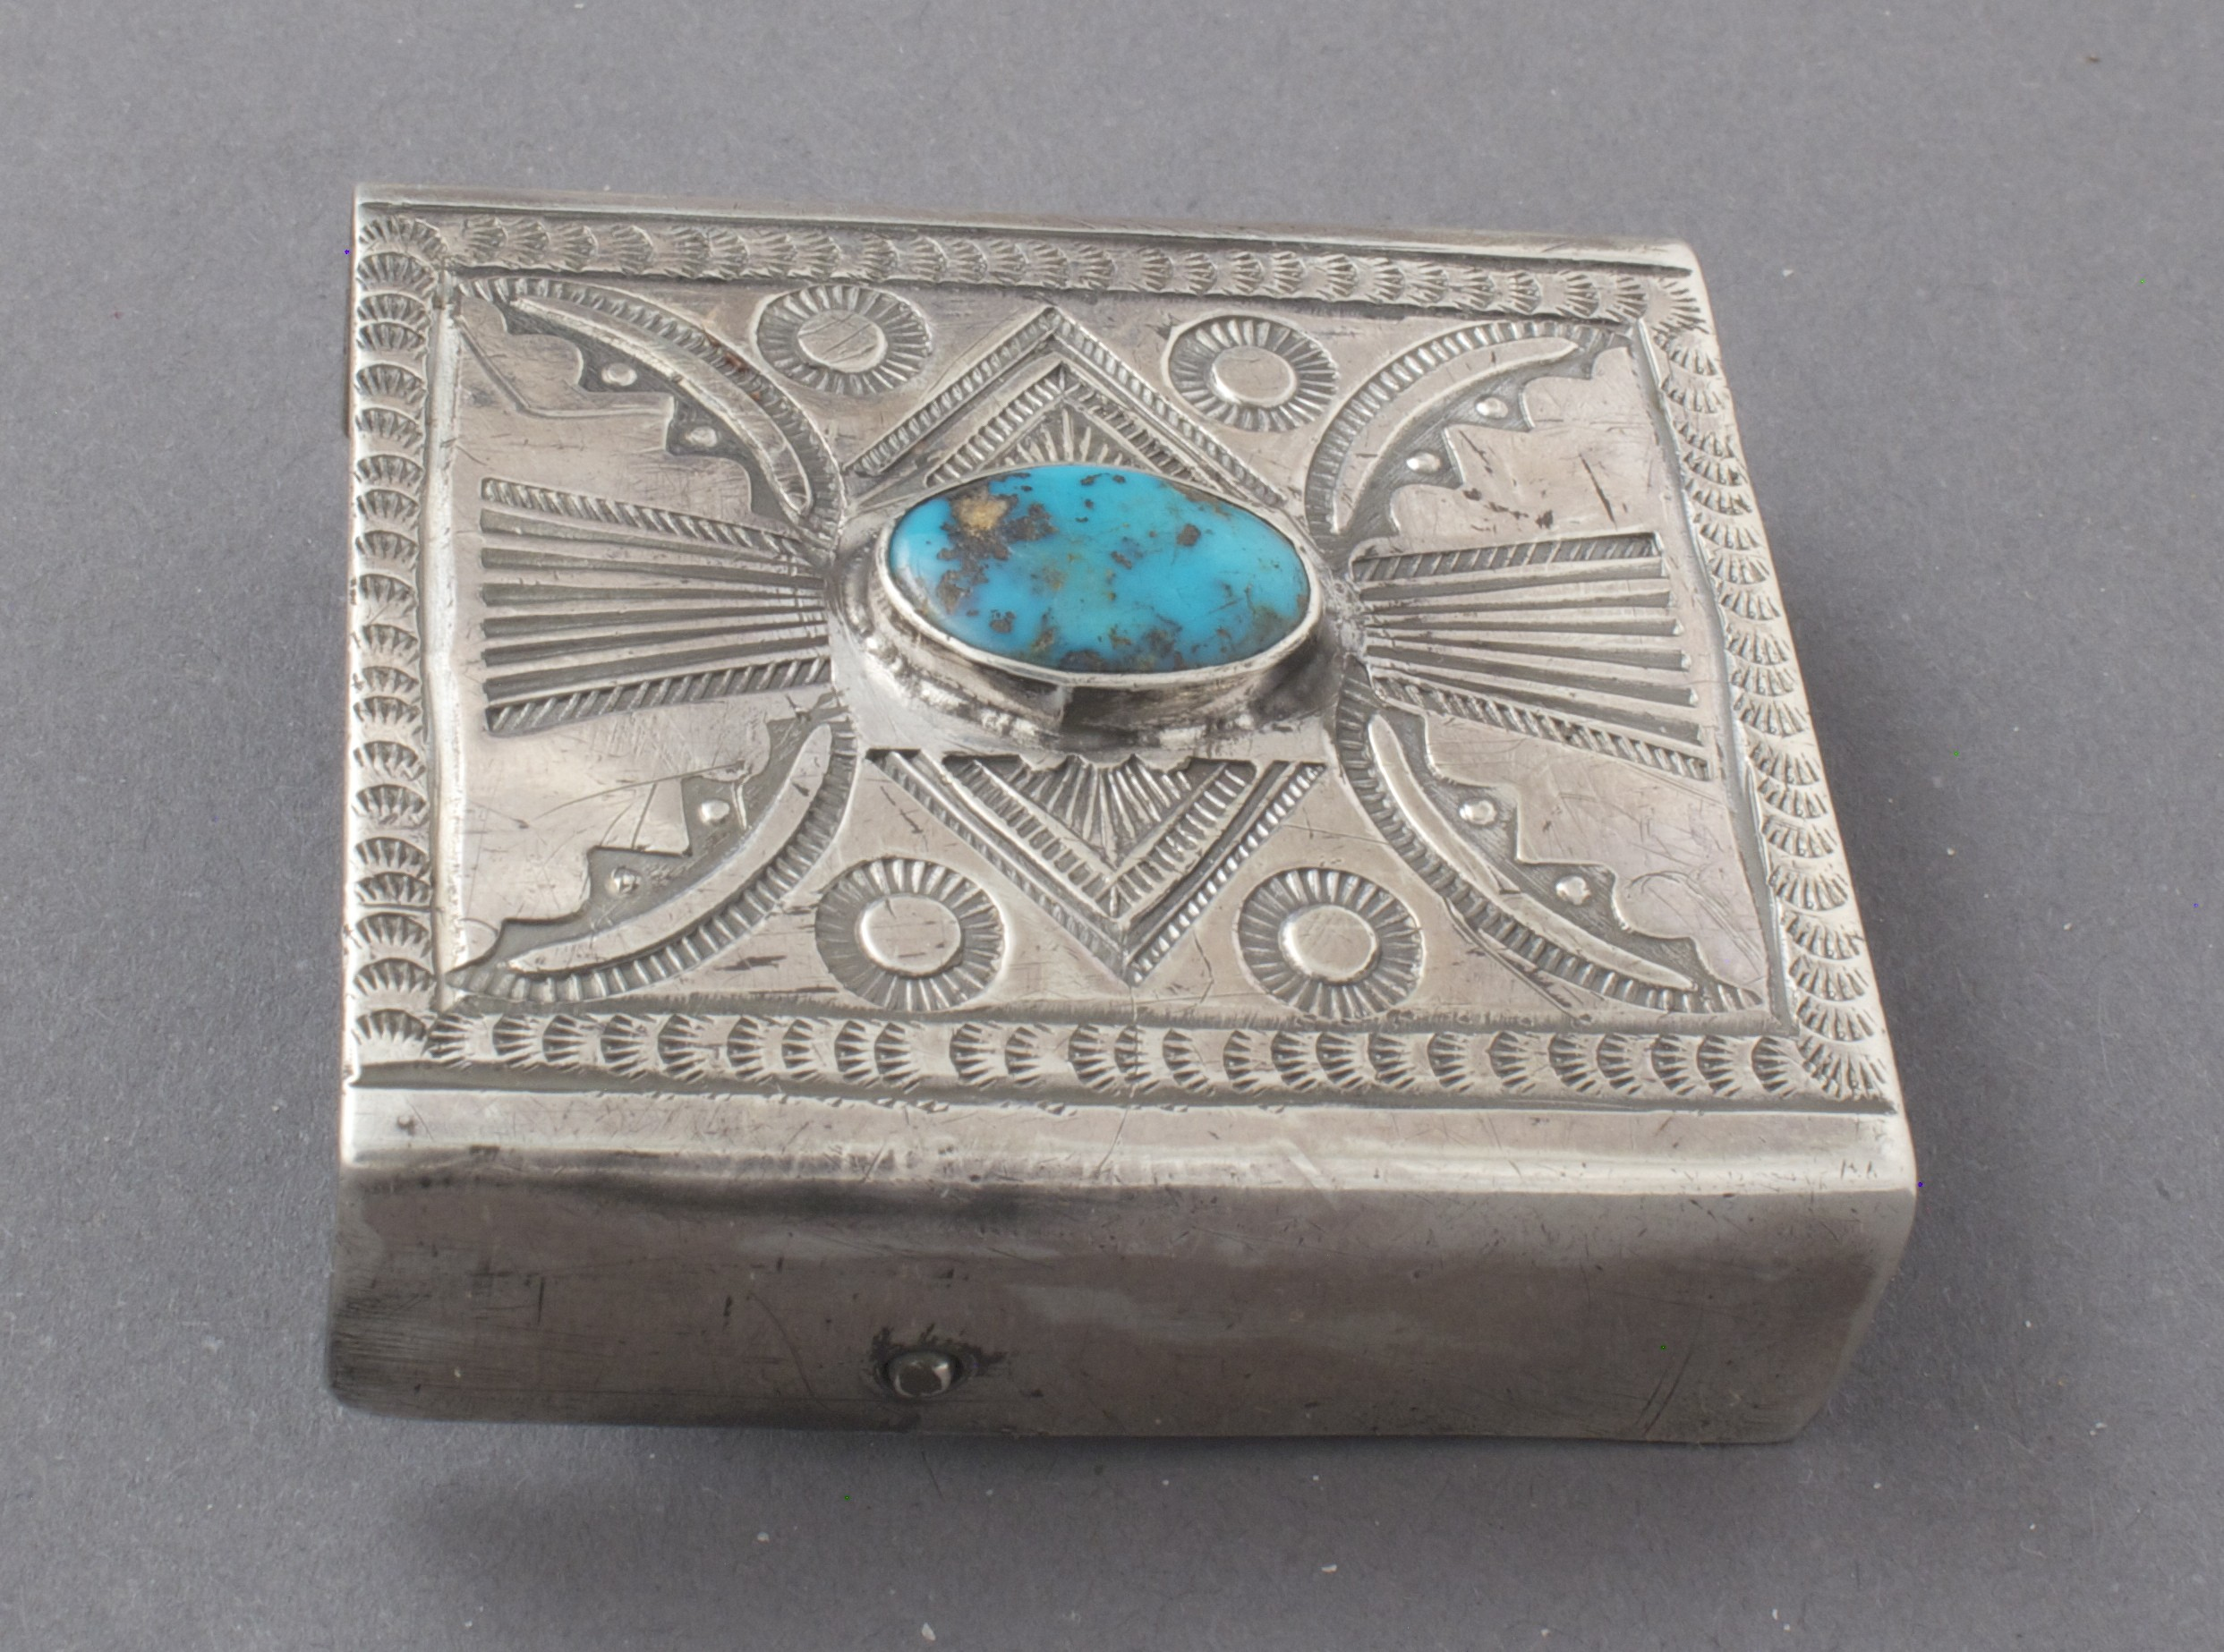 Austin Wilson Buckle with Turquoise